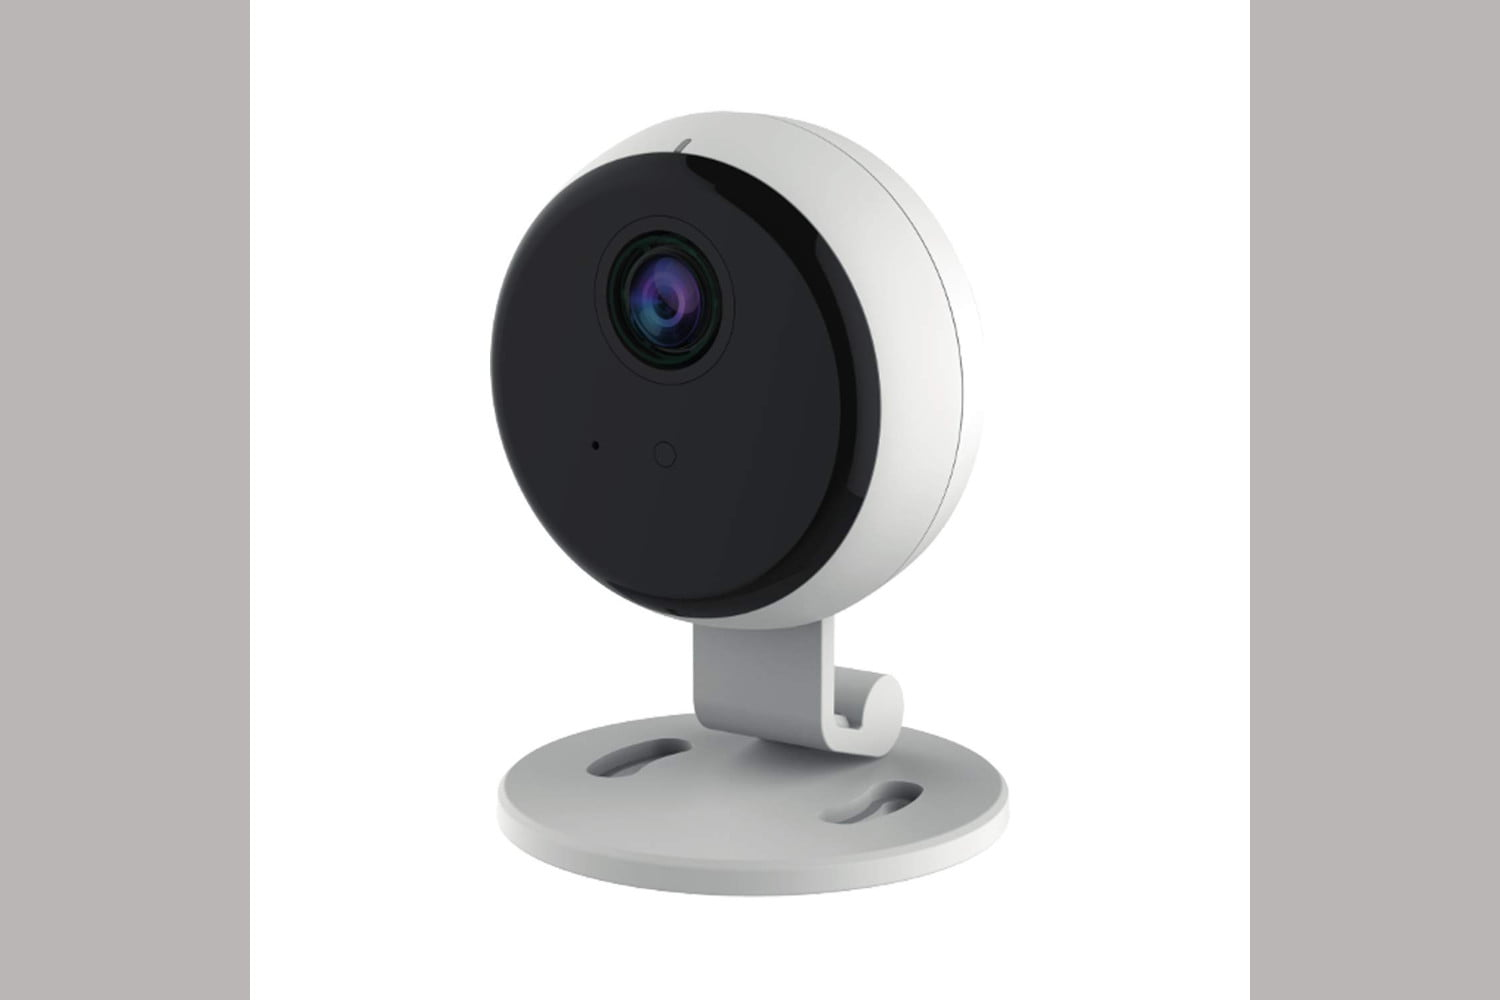 amazon drops post prime day deals on scout alarm diy smart home security kits indoor camera  1